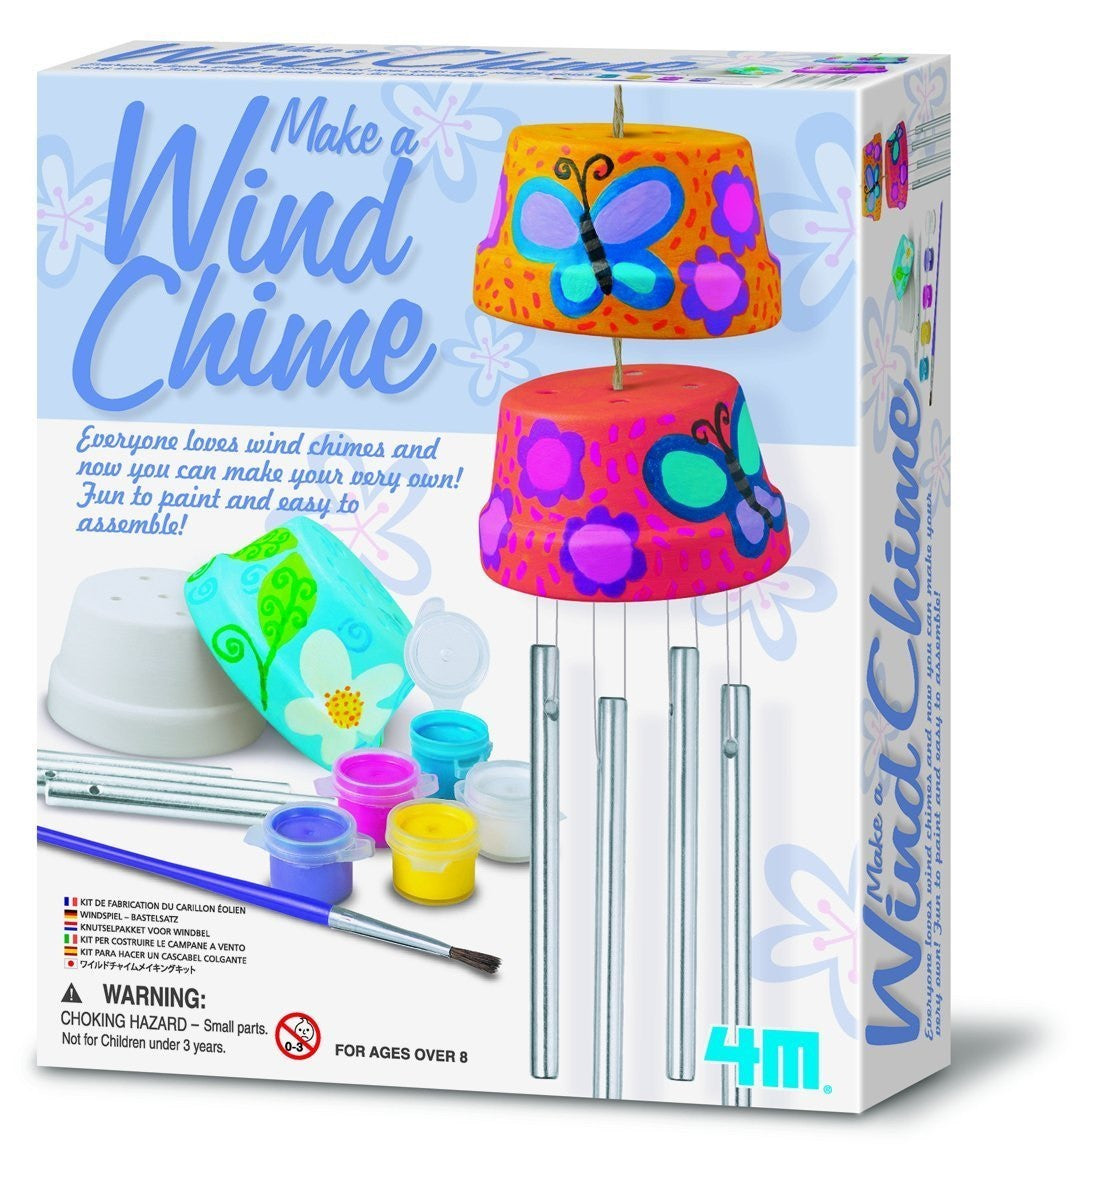 Make a Wind Chime a 4M Kit from Toysmith - Off The Wall Toys and Gifts